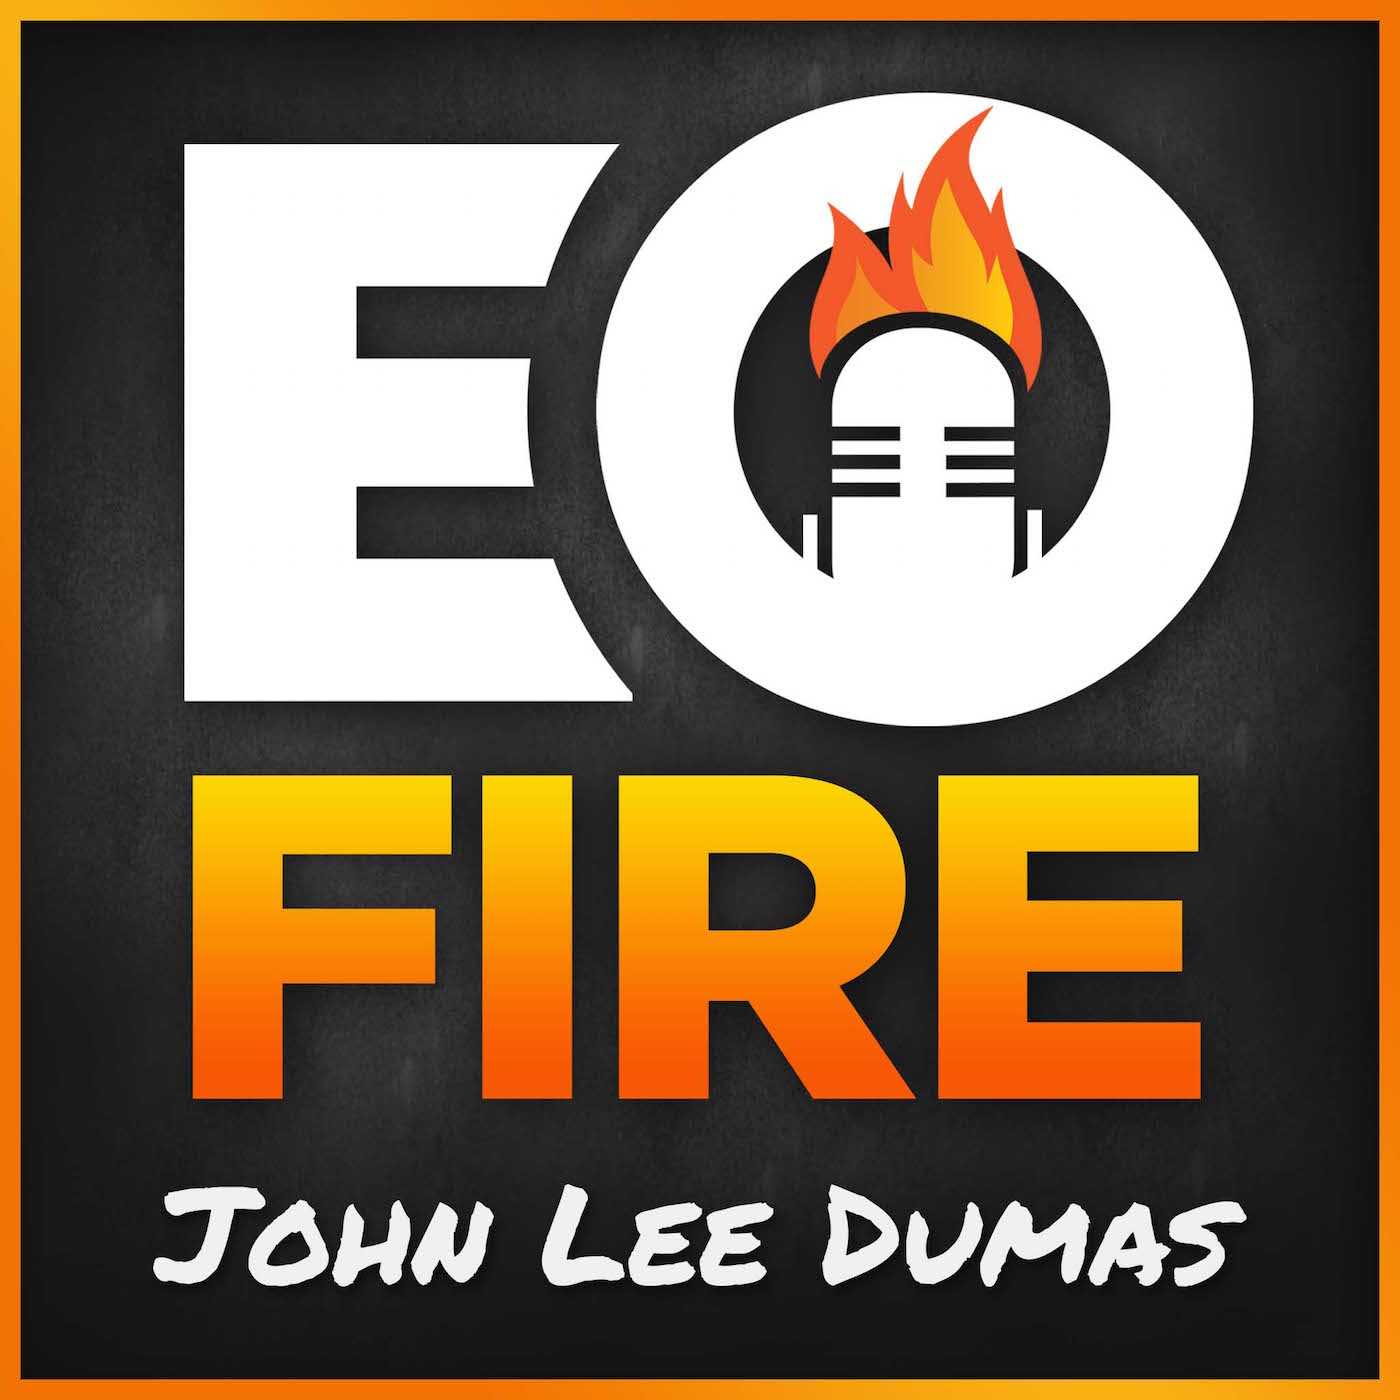 Best Podcasts for Entrepreneurs | John Lee Dumas of EOFire.com on the Thrivetime Show Podcast